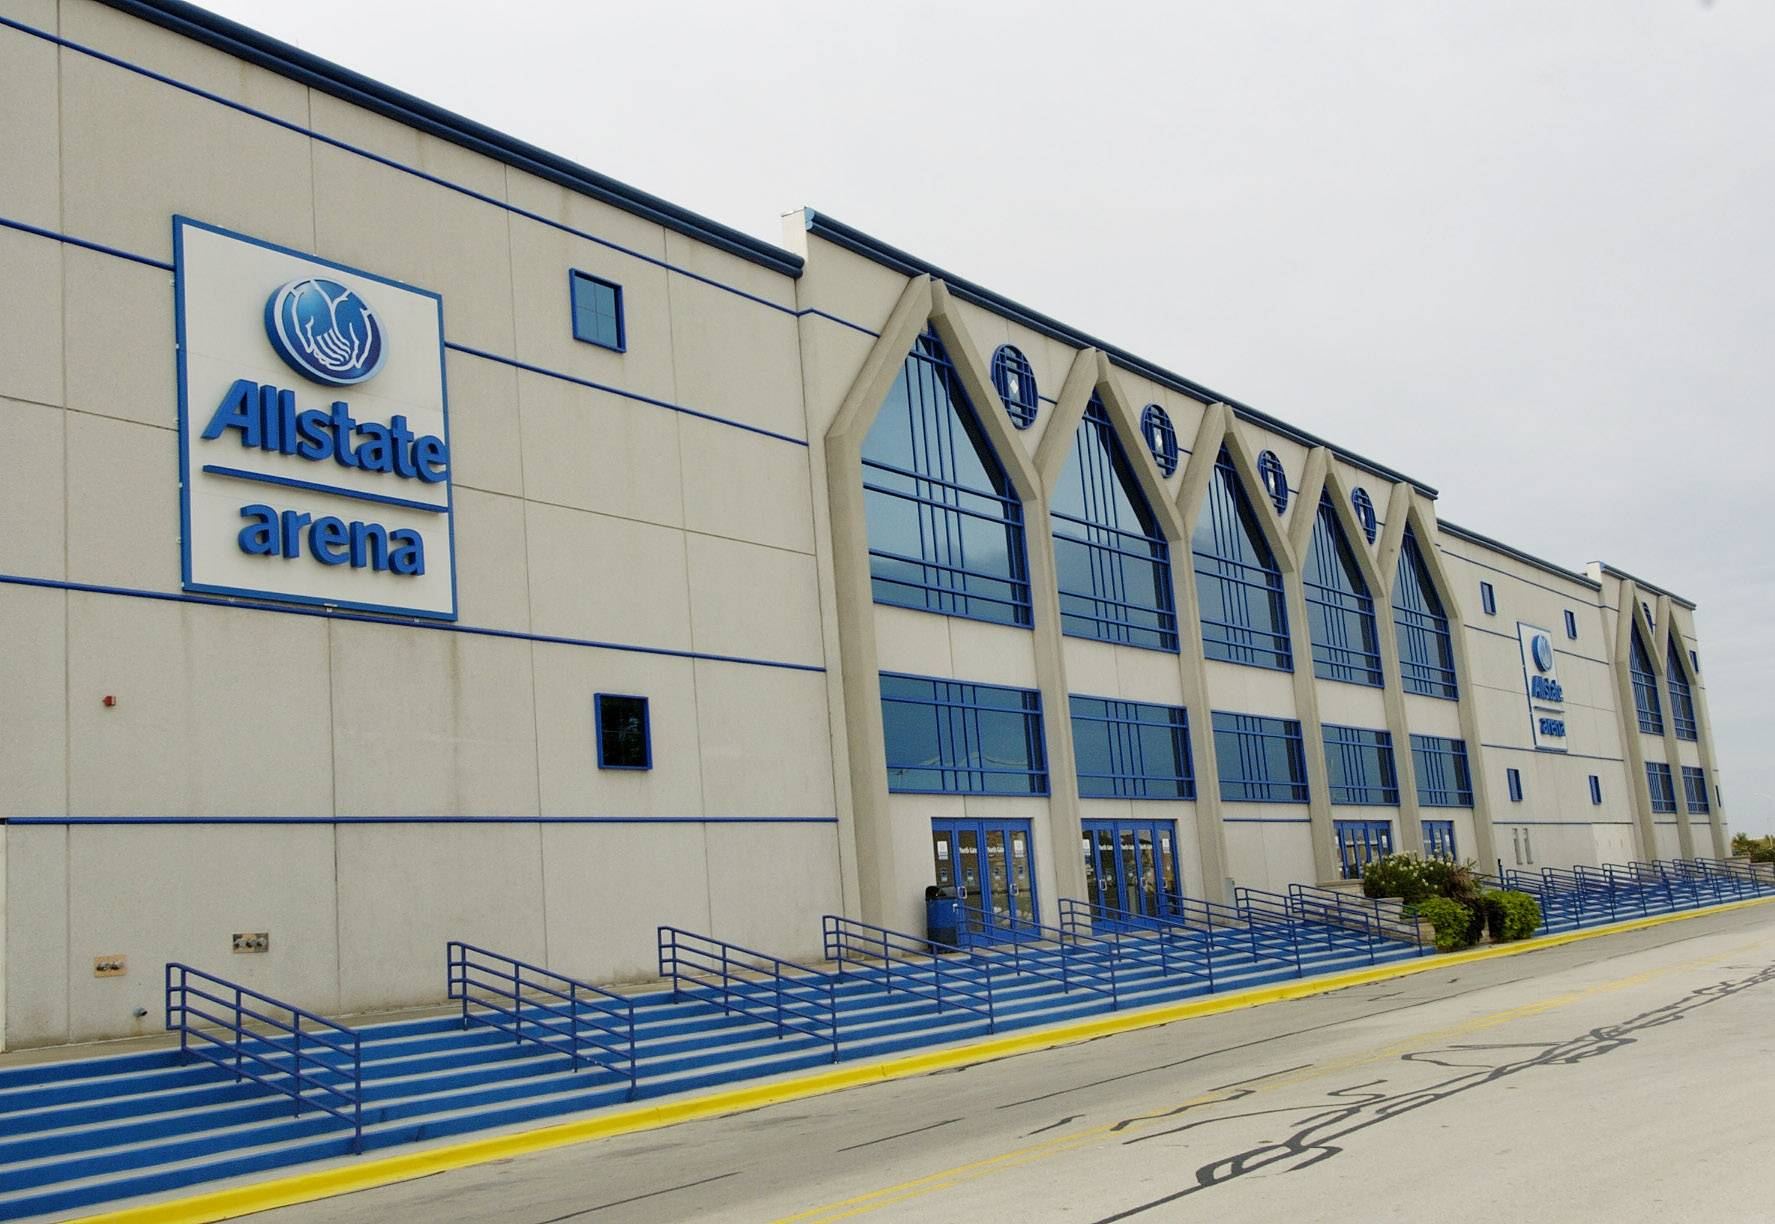 Bomark Cleaning Service has janitorial and parking contracts for Rosemont's Allstate Arena and other village venues. The village board extended agreements with the company Wednesday.